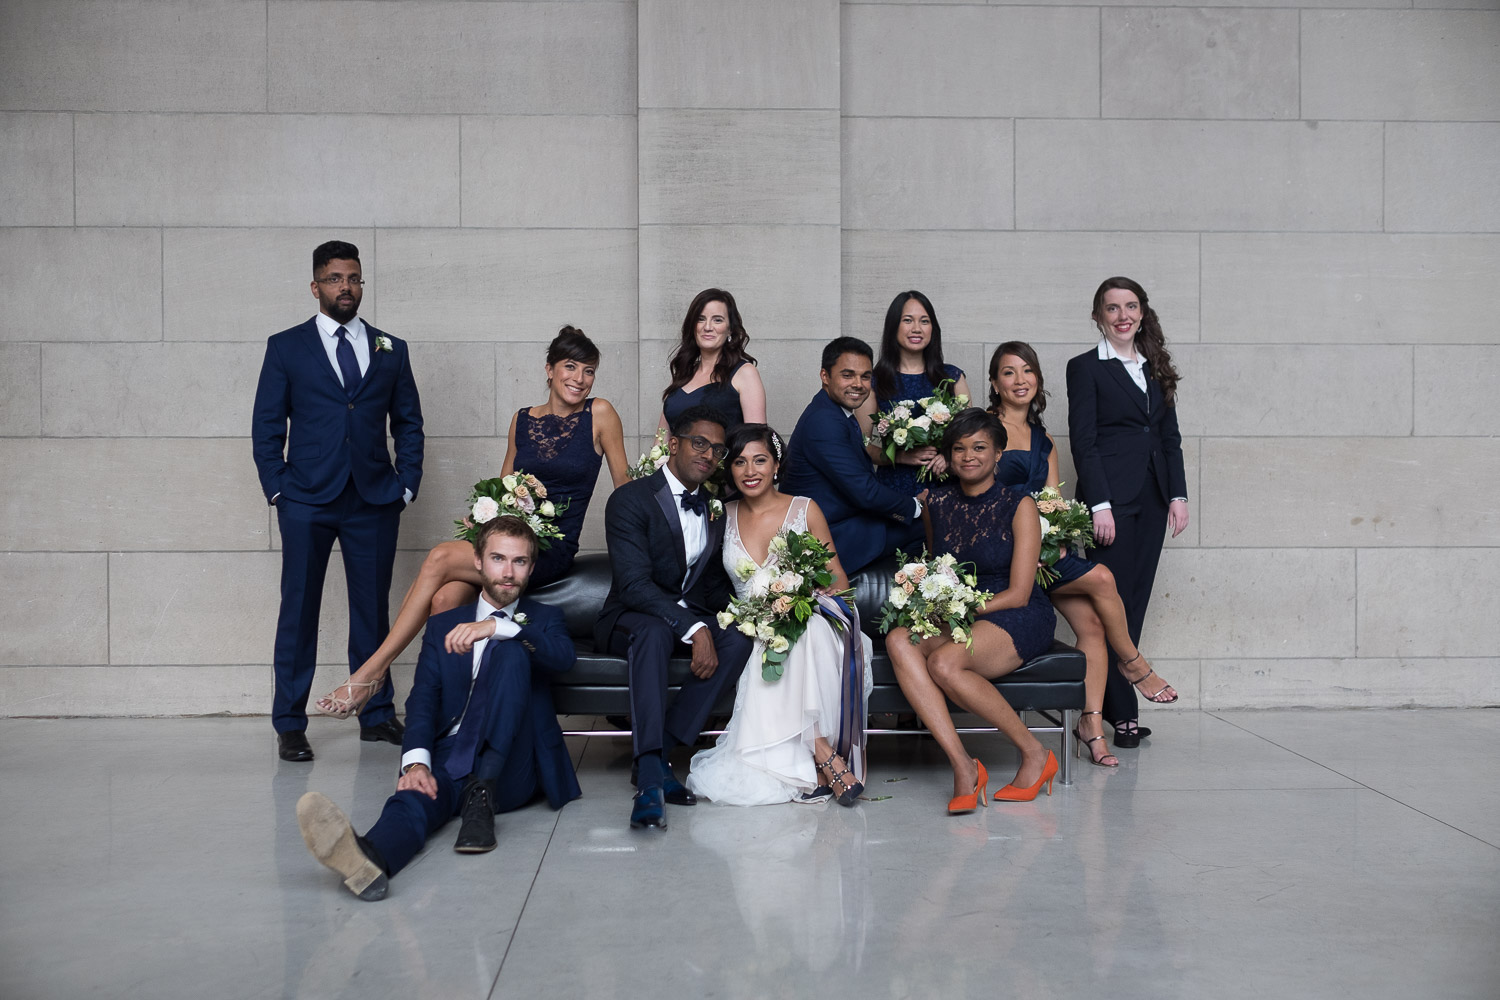 A portait of the wedding party from Najwa + Trevin's wedding at the Art Gallery of Ontario in Toronto.